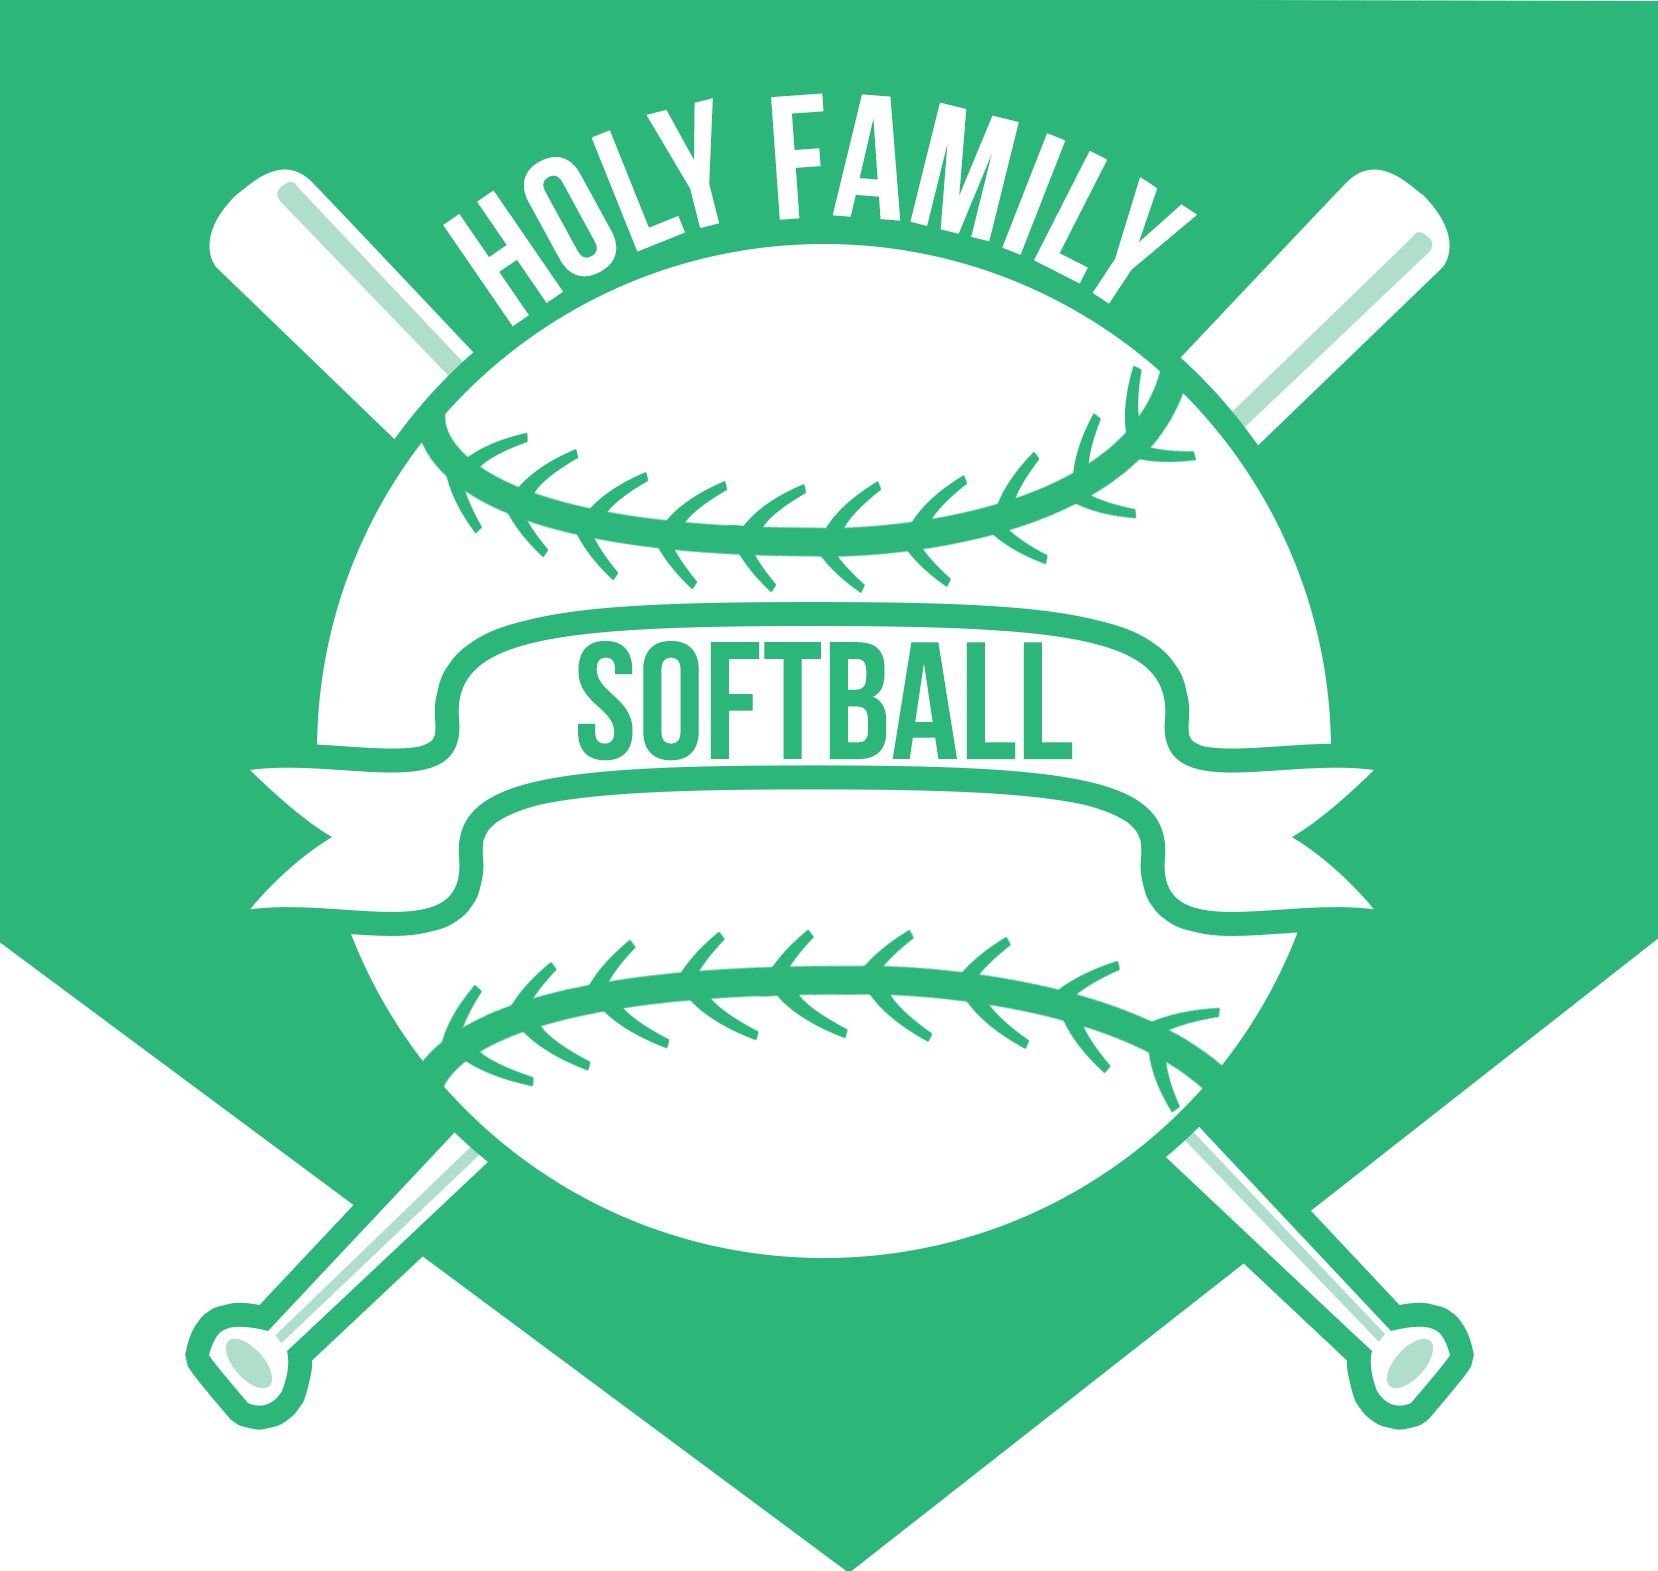 Friendly clipart co education. Softball church of the